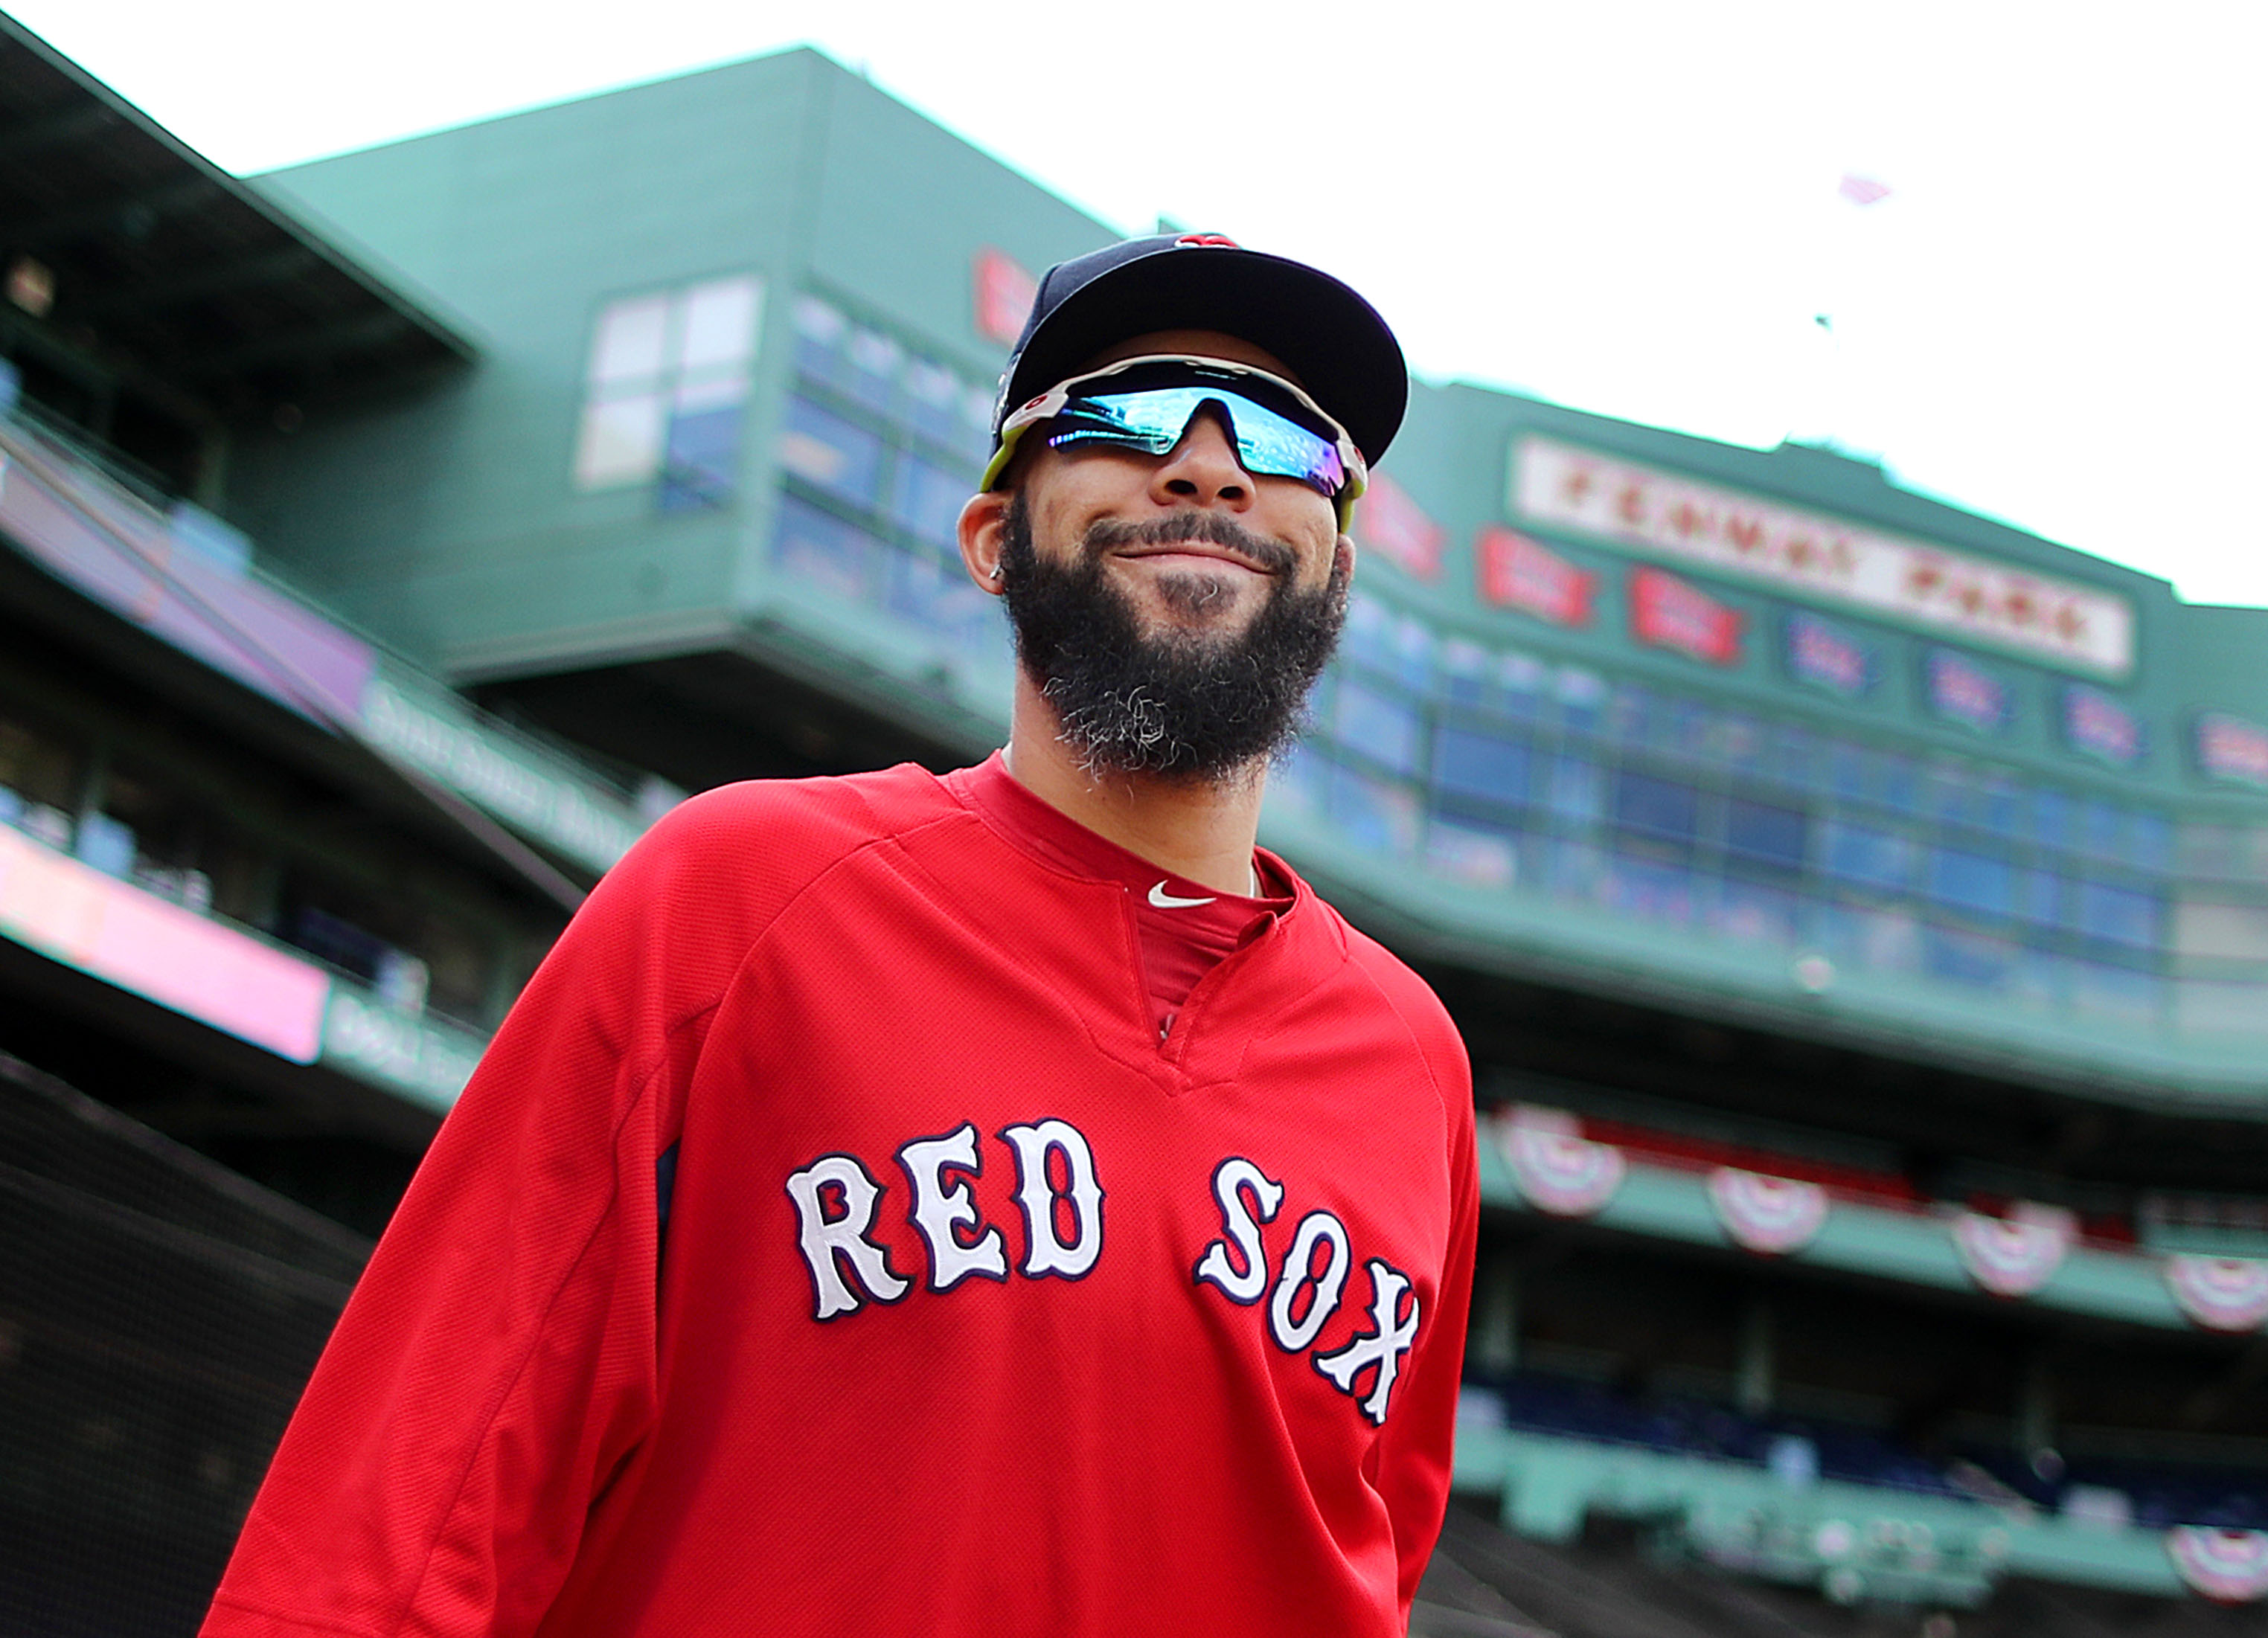 David Price's passion for baseball during childhood set the